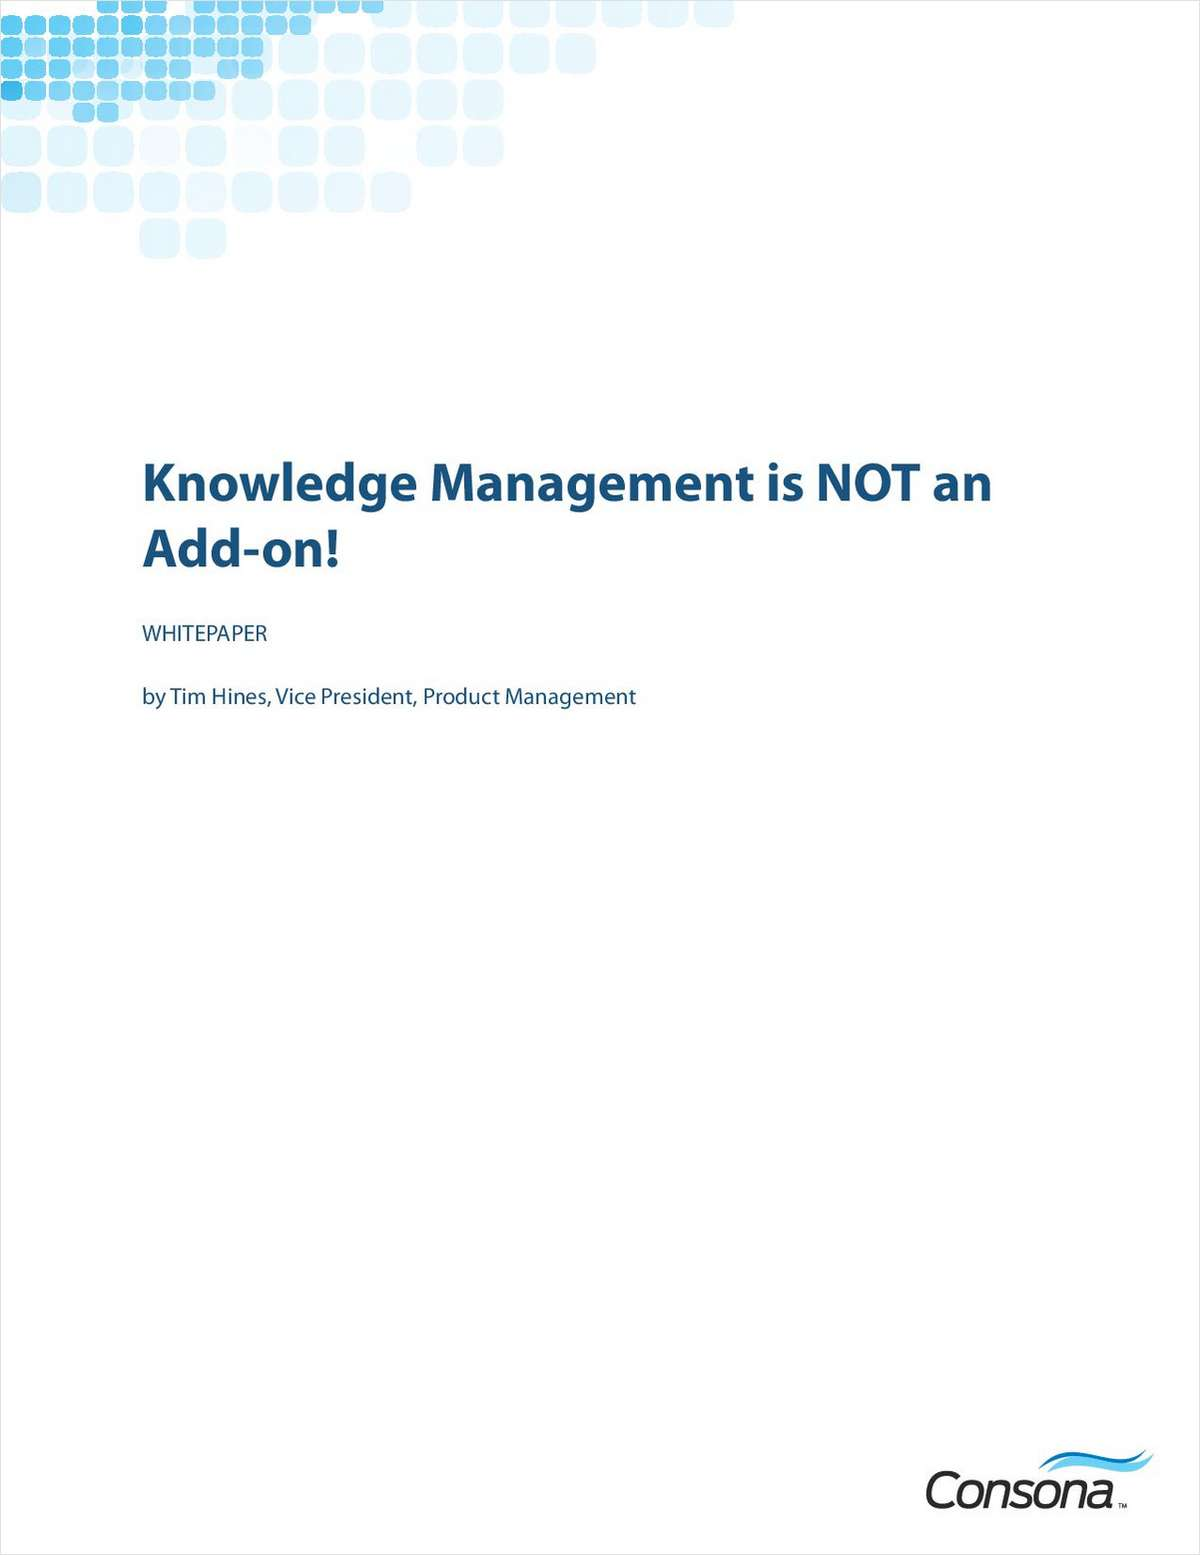 High-Tech and Telecom Customer Service and Support: Knowledge Management is NOT an Add-on!